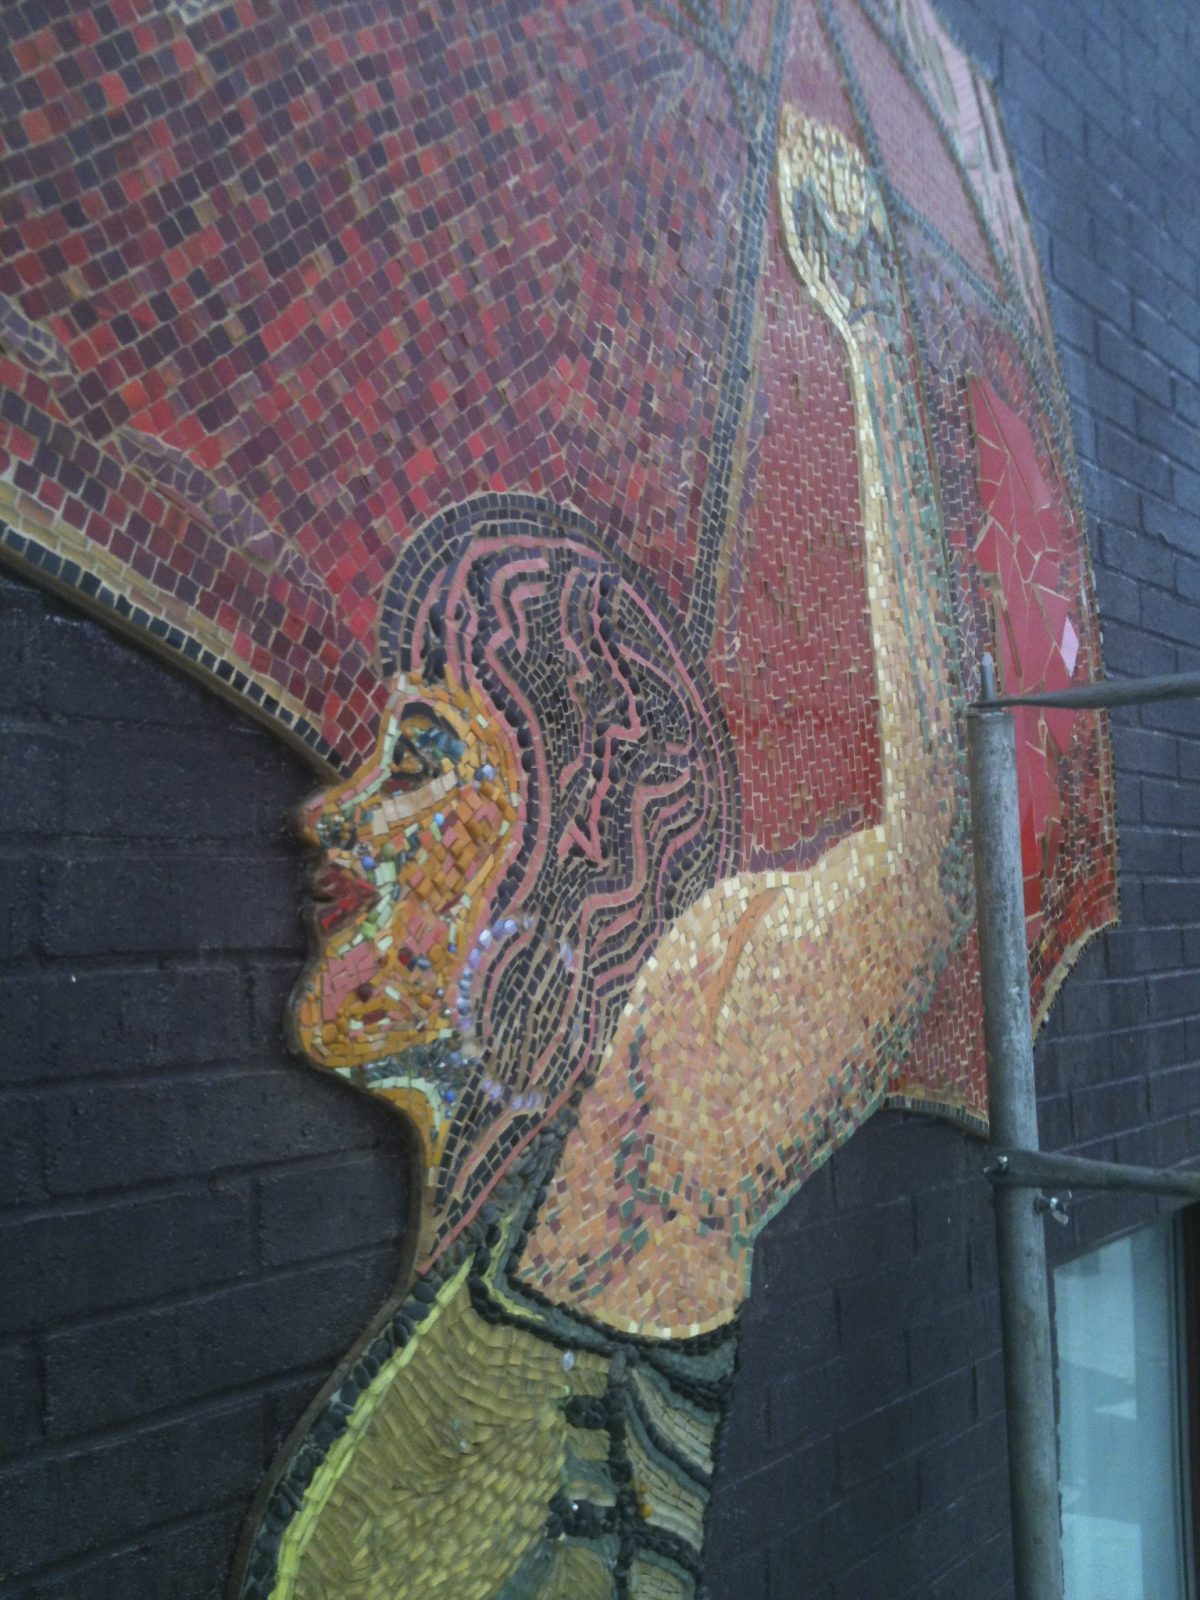 [Image description: A photograph of the mural of the woman from a different angle, showing the multicoloured tiling detail and her smiling face]